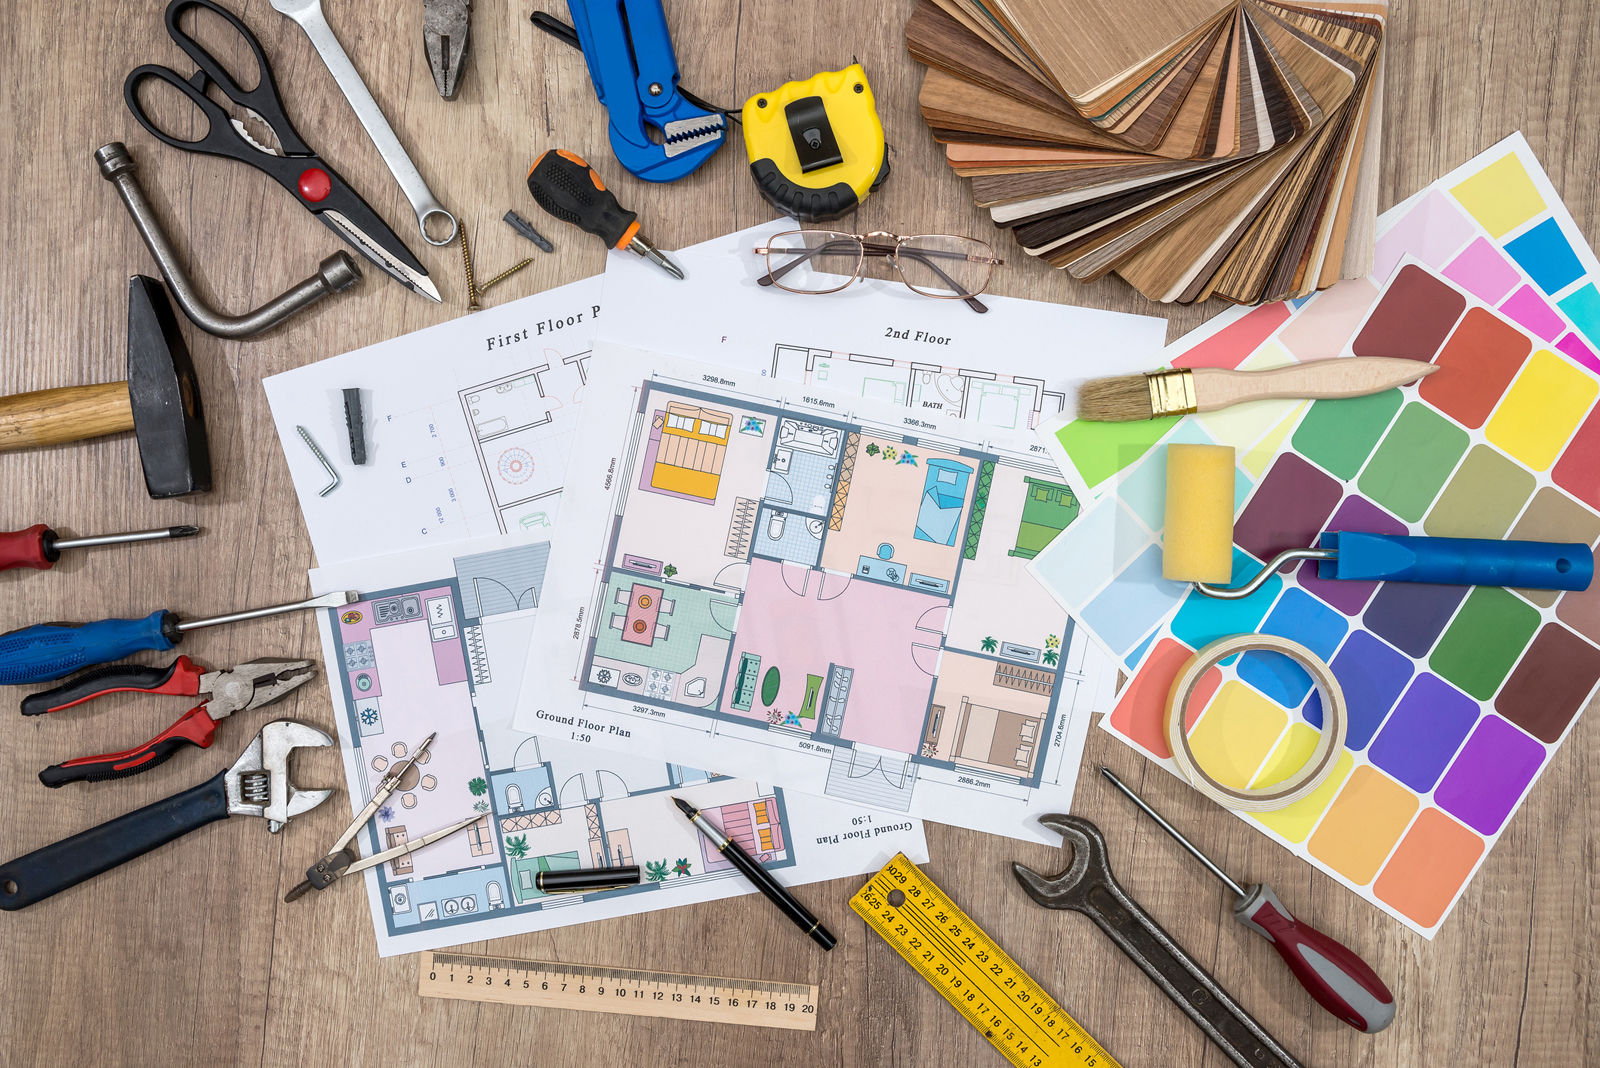 Not all home renovations are created equal, here are the top 10 to get the most bang for your buck. (Thinkstock)